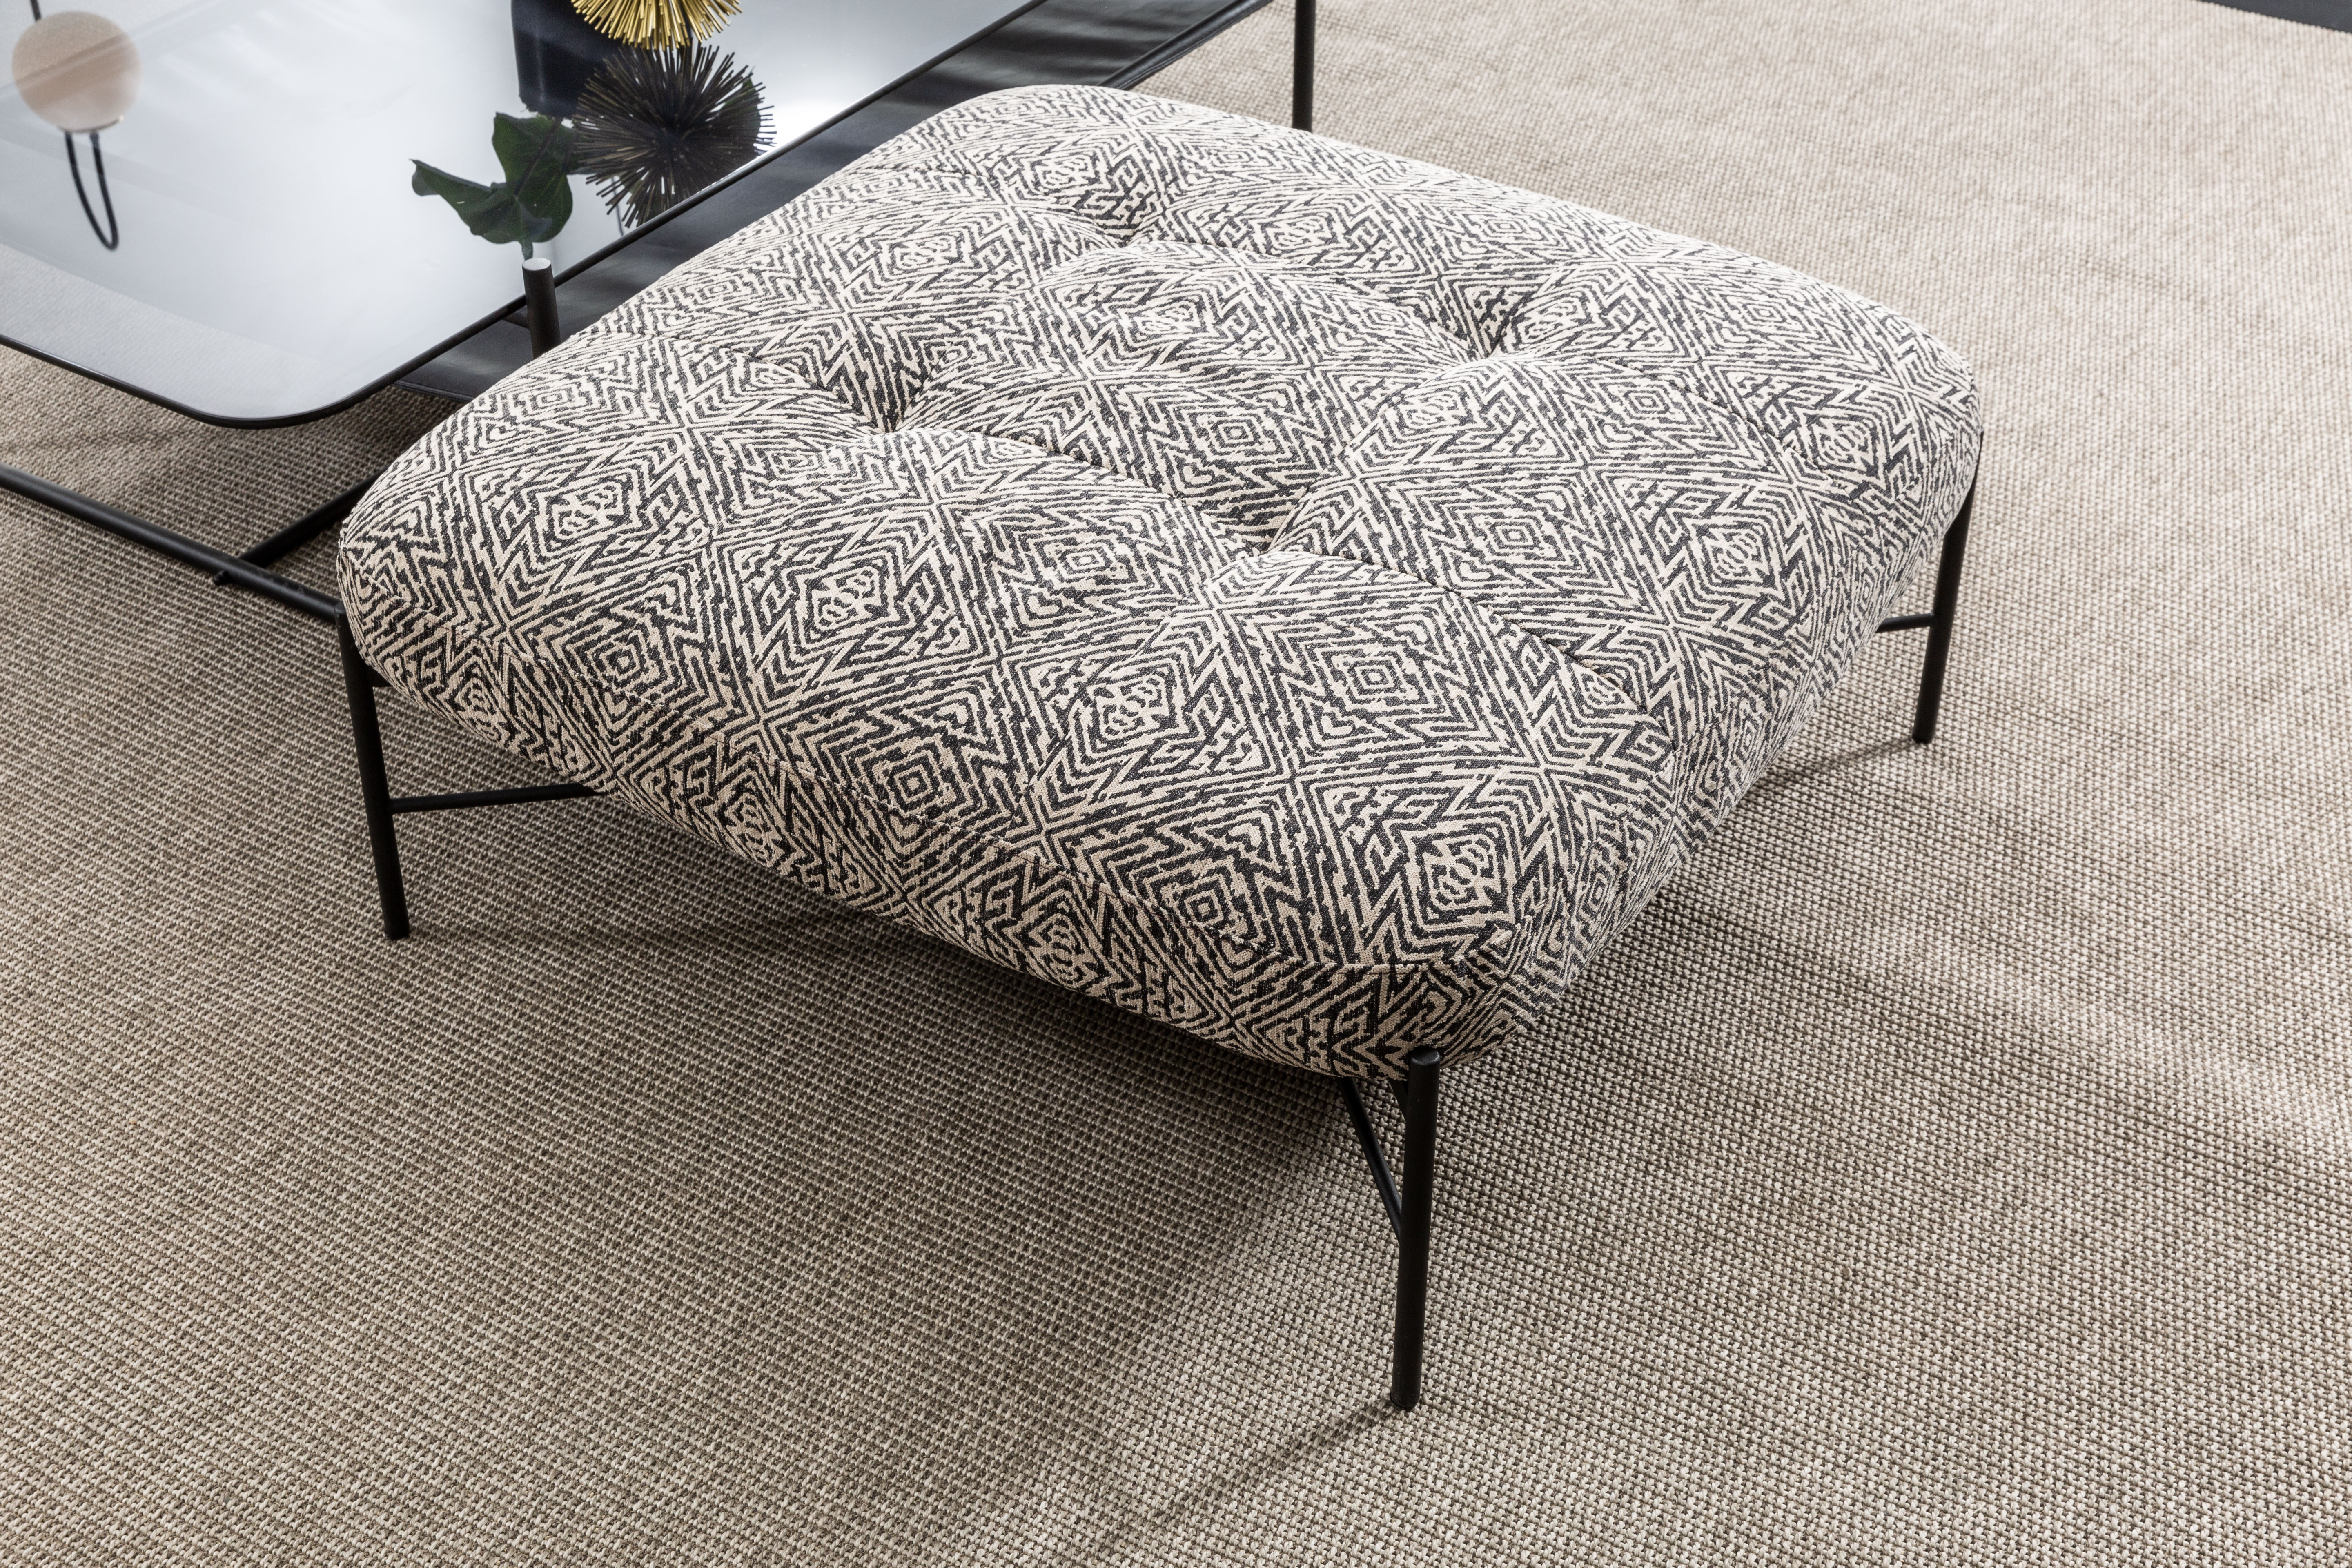 low stools, benches & poufs